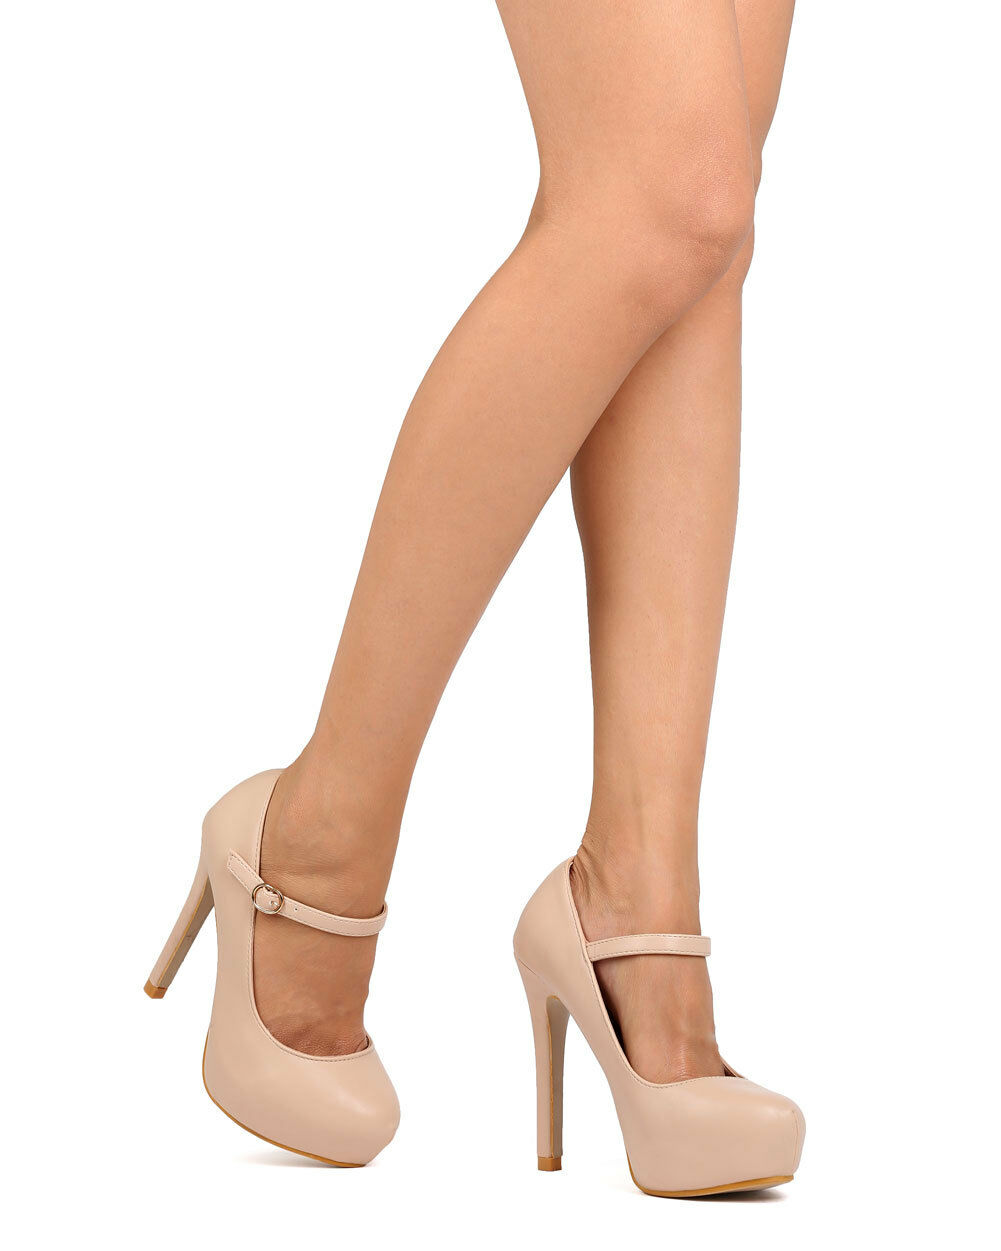 New Women DbDk Party-10 PU Almond Toe Mary Jane Stiletto Platform Stiletto Jane Pump 380b77